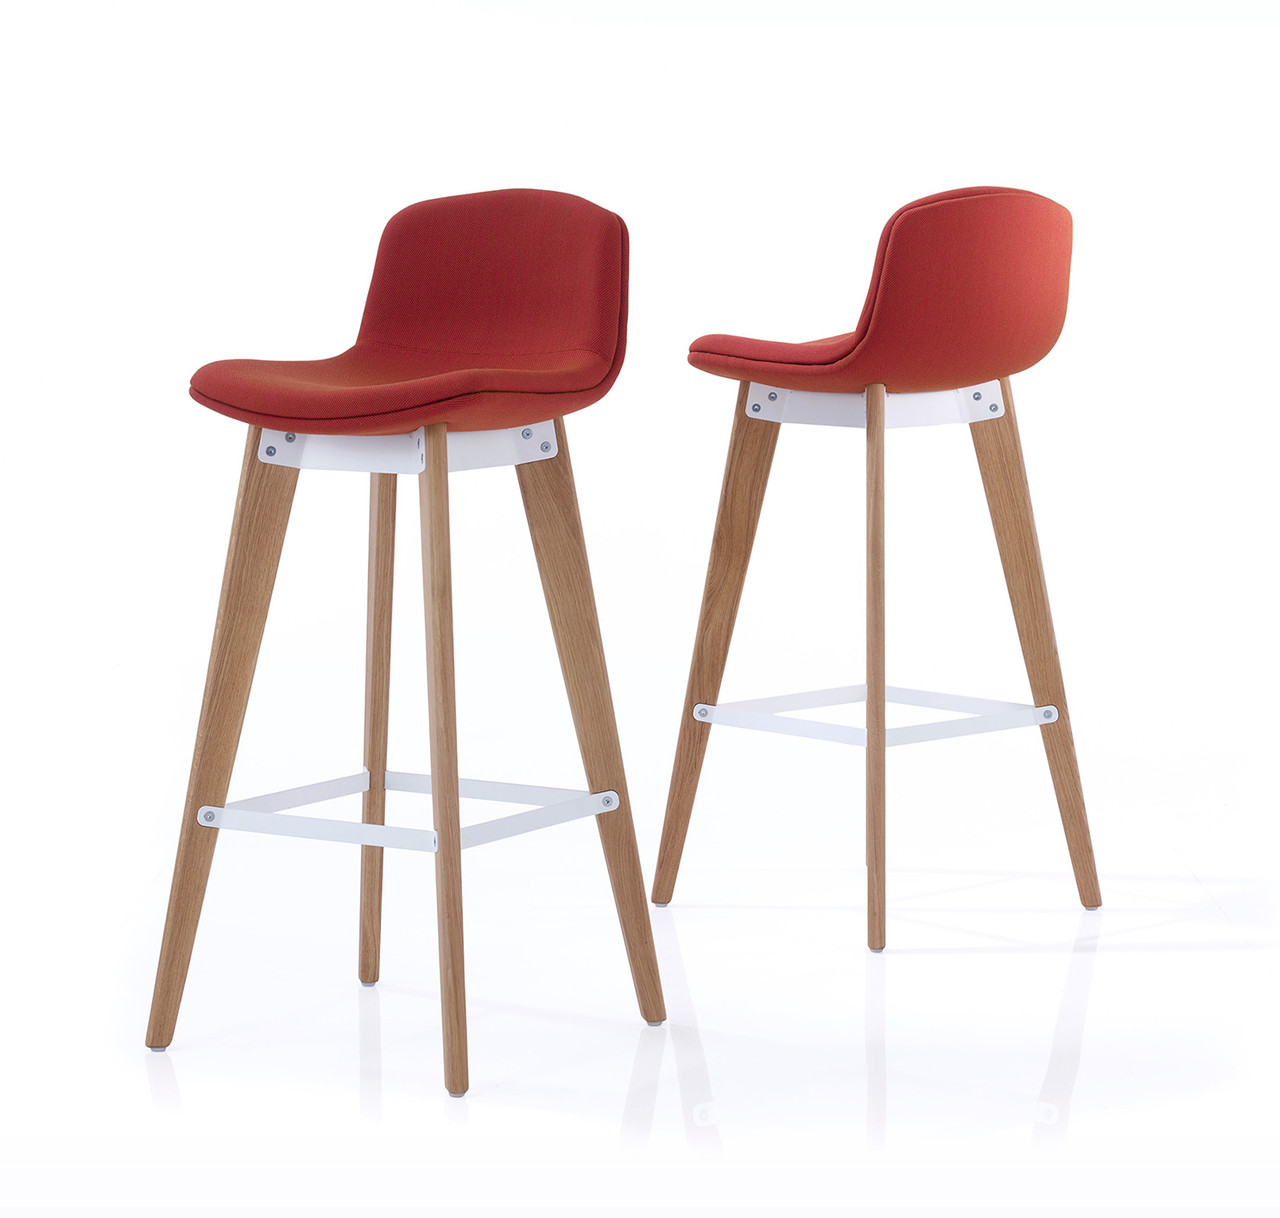 Orangebox Cubb Bar Stool Wood Base : 11Coda 13StudioHigh36866146902992912801280 from www.think-furniture.com size 1280 x 1218 jpeg 427kB